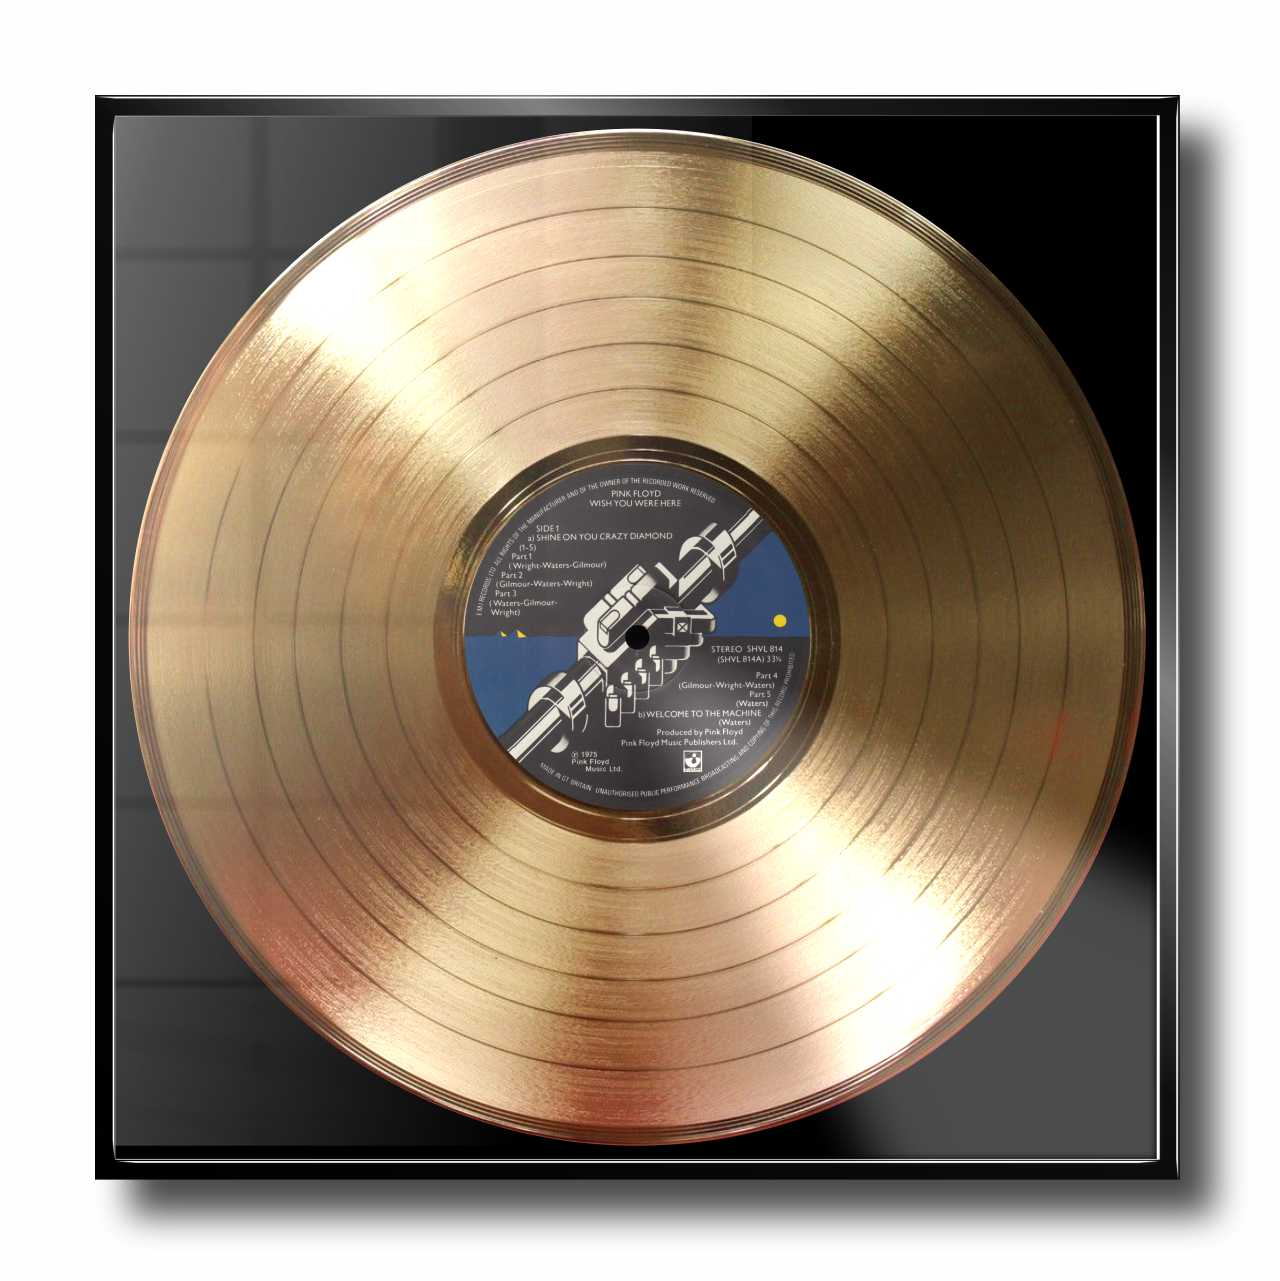 Pink Floyd Framed Gold Vinyl Record For Collection